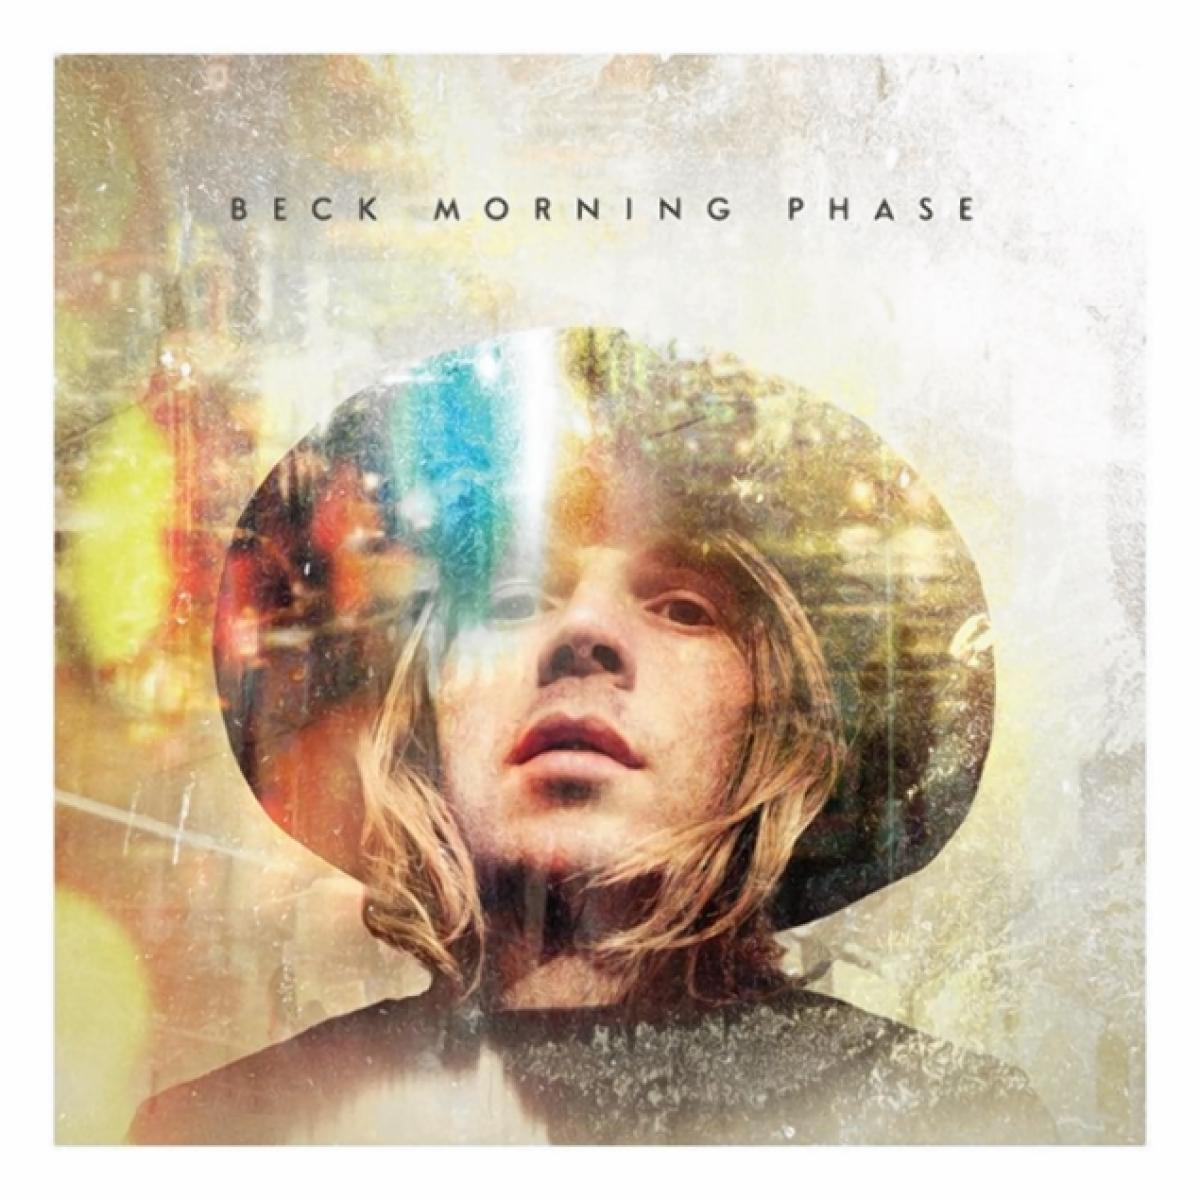 Beck: Morning Phase |Manlihood.com Music Review